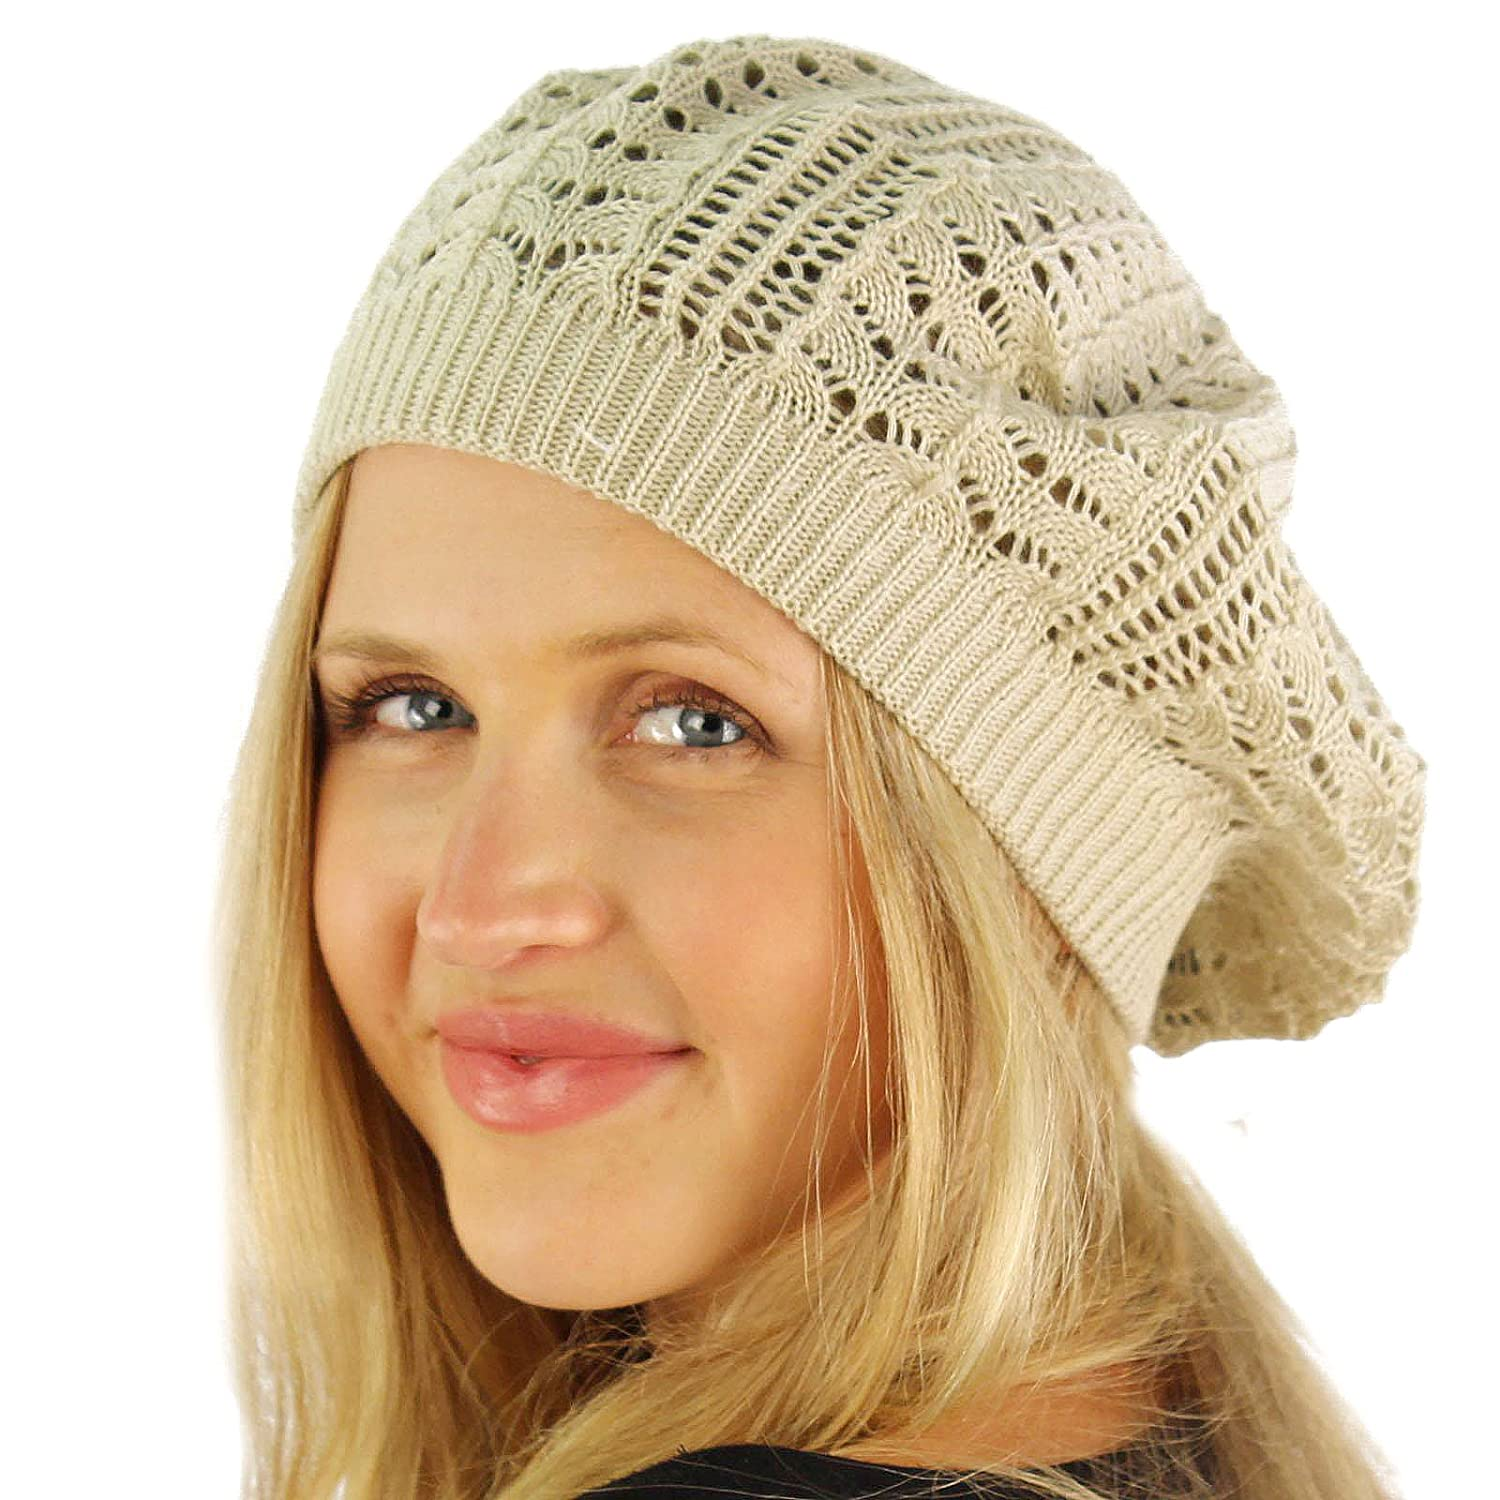 Ladies Crochet Knit Light Weight Vented Beret Slouch Hat